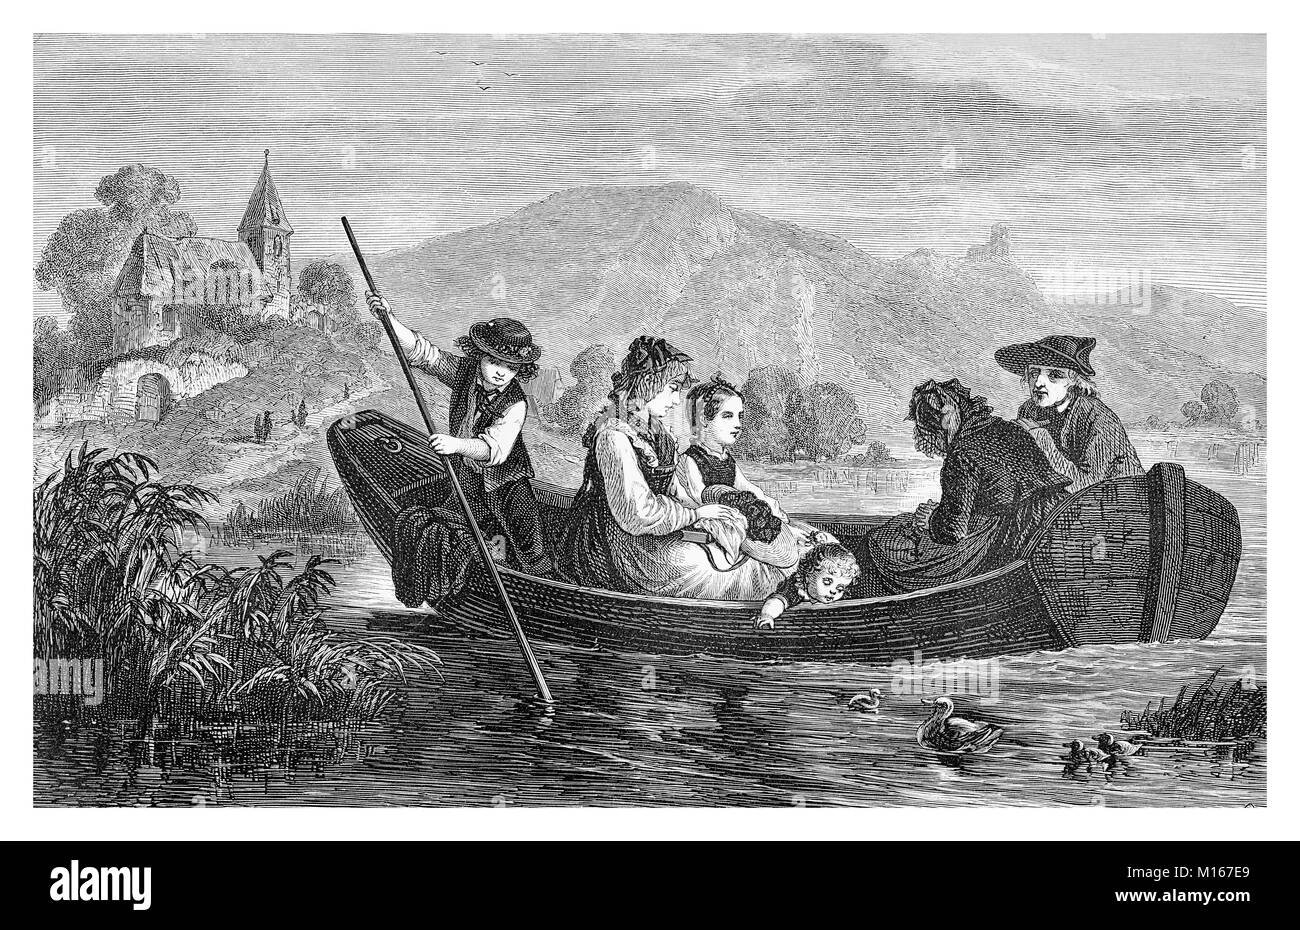 Sunday trip to church, family in a boat rowing on lake waters, vintage engraving - Stock Image